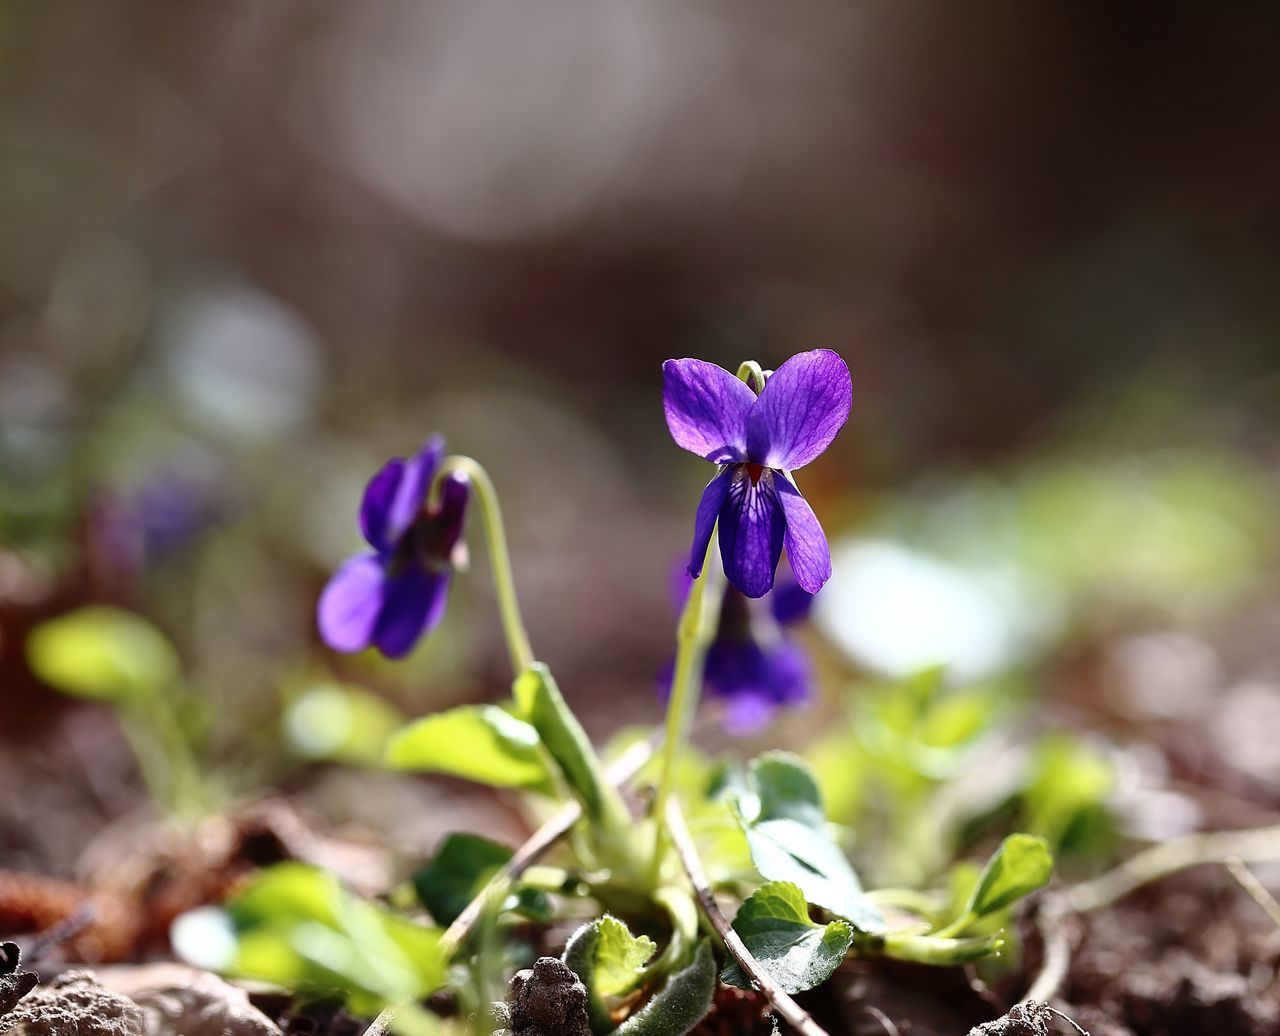 Viola odorata. Violet Violet Flowers Flowers Viola Odorata Flowerporn Nature's Diversities Flowers,Plants & Garden Wildflowers Forest Colors Integrity Modesty  Purity Beautiful Nature Beauty In Nature Nature On Your Doorstep Nature_collection Nature Photography Naturelovers EyeEm Nature Lover Spring Springtime Spring Flowers Showcase April Earth